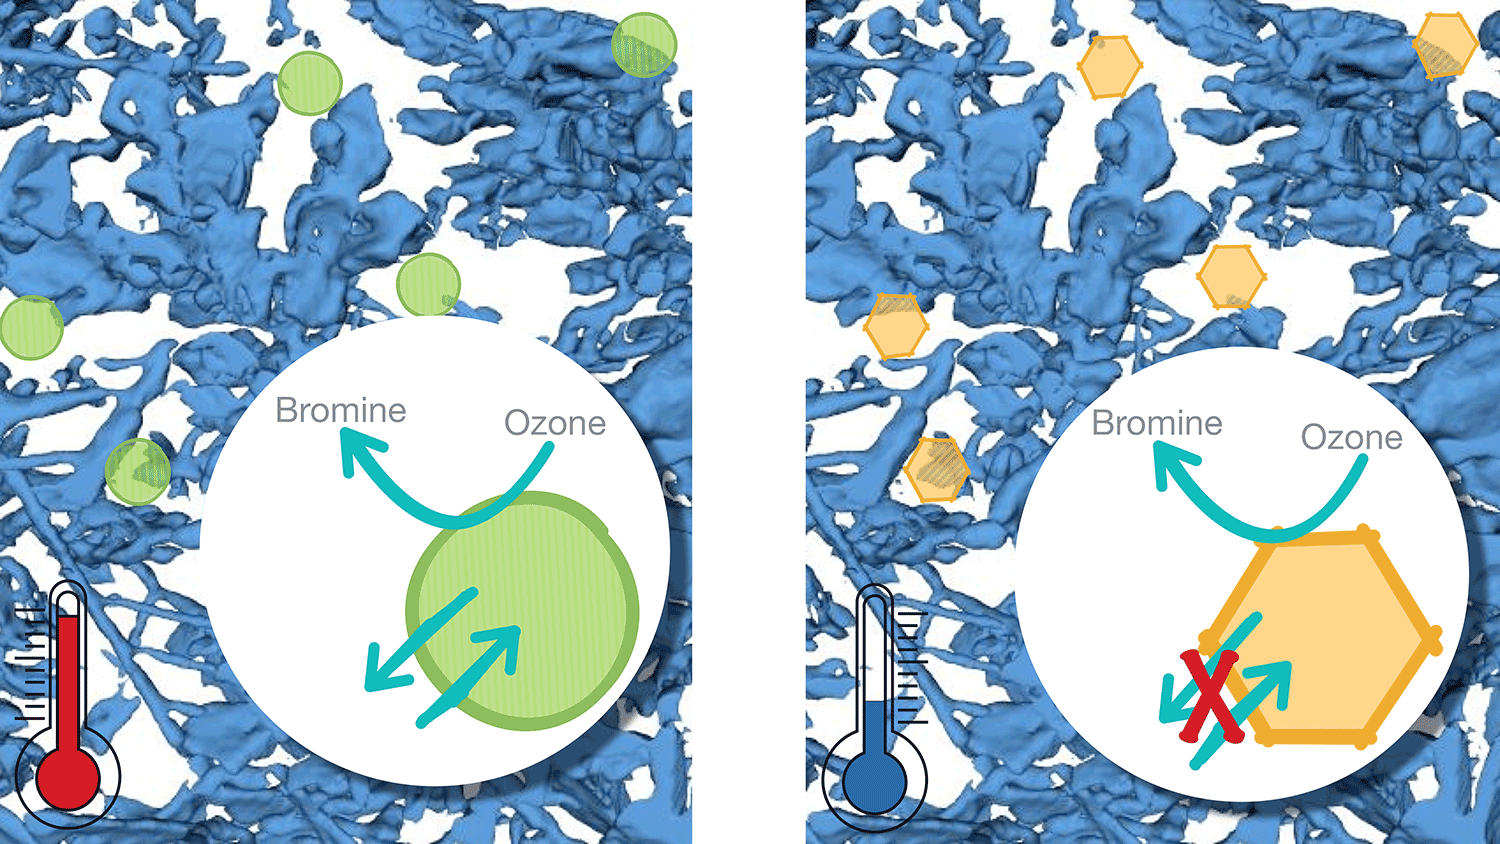 The phase of aerosol particles in snow changes with decreasing temperatures from liquid (green circles) to solid (yellow hexagons). As consequence, reactive processes in the bulk would become less feasible, while surface reactions occur remain in operation. (3-dimensional µCT reconstruction of snow: Schneebeli, WSL-SLF Davos).